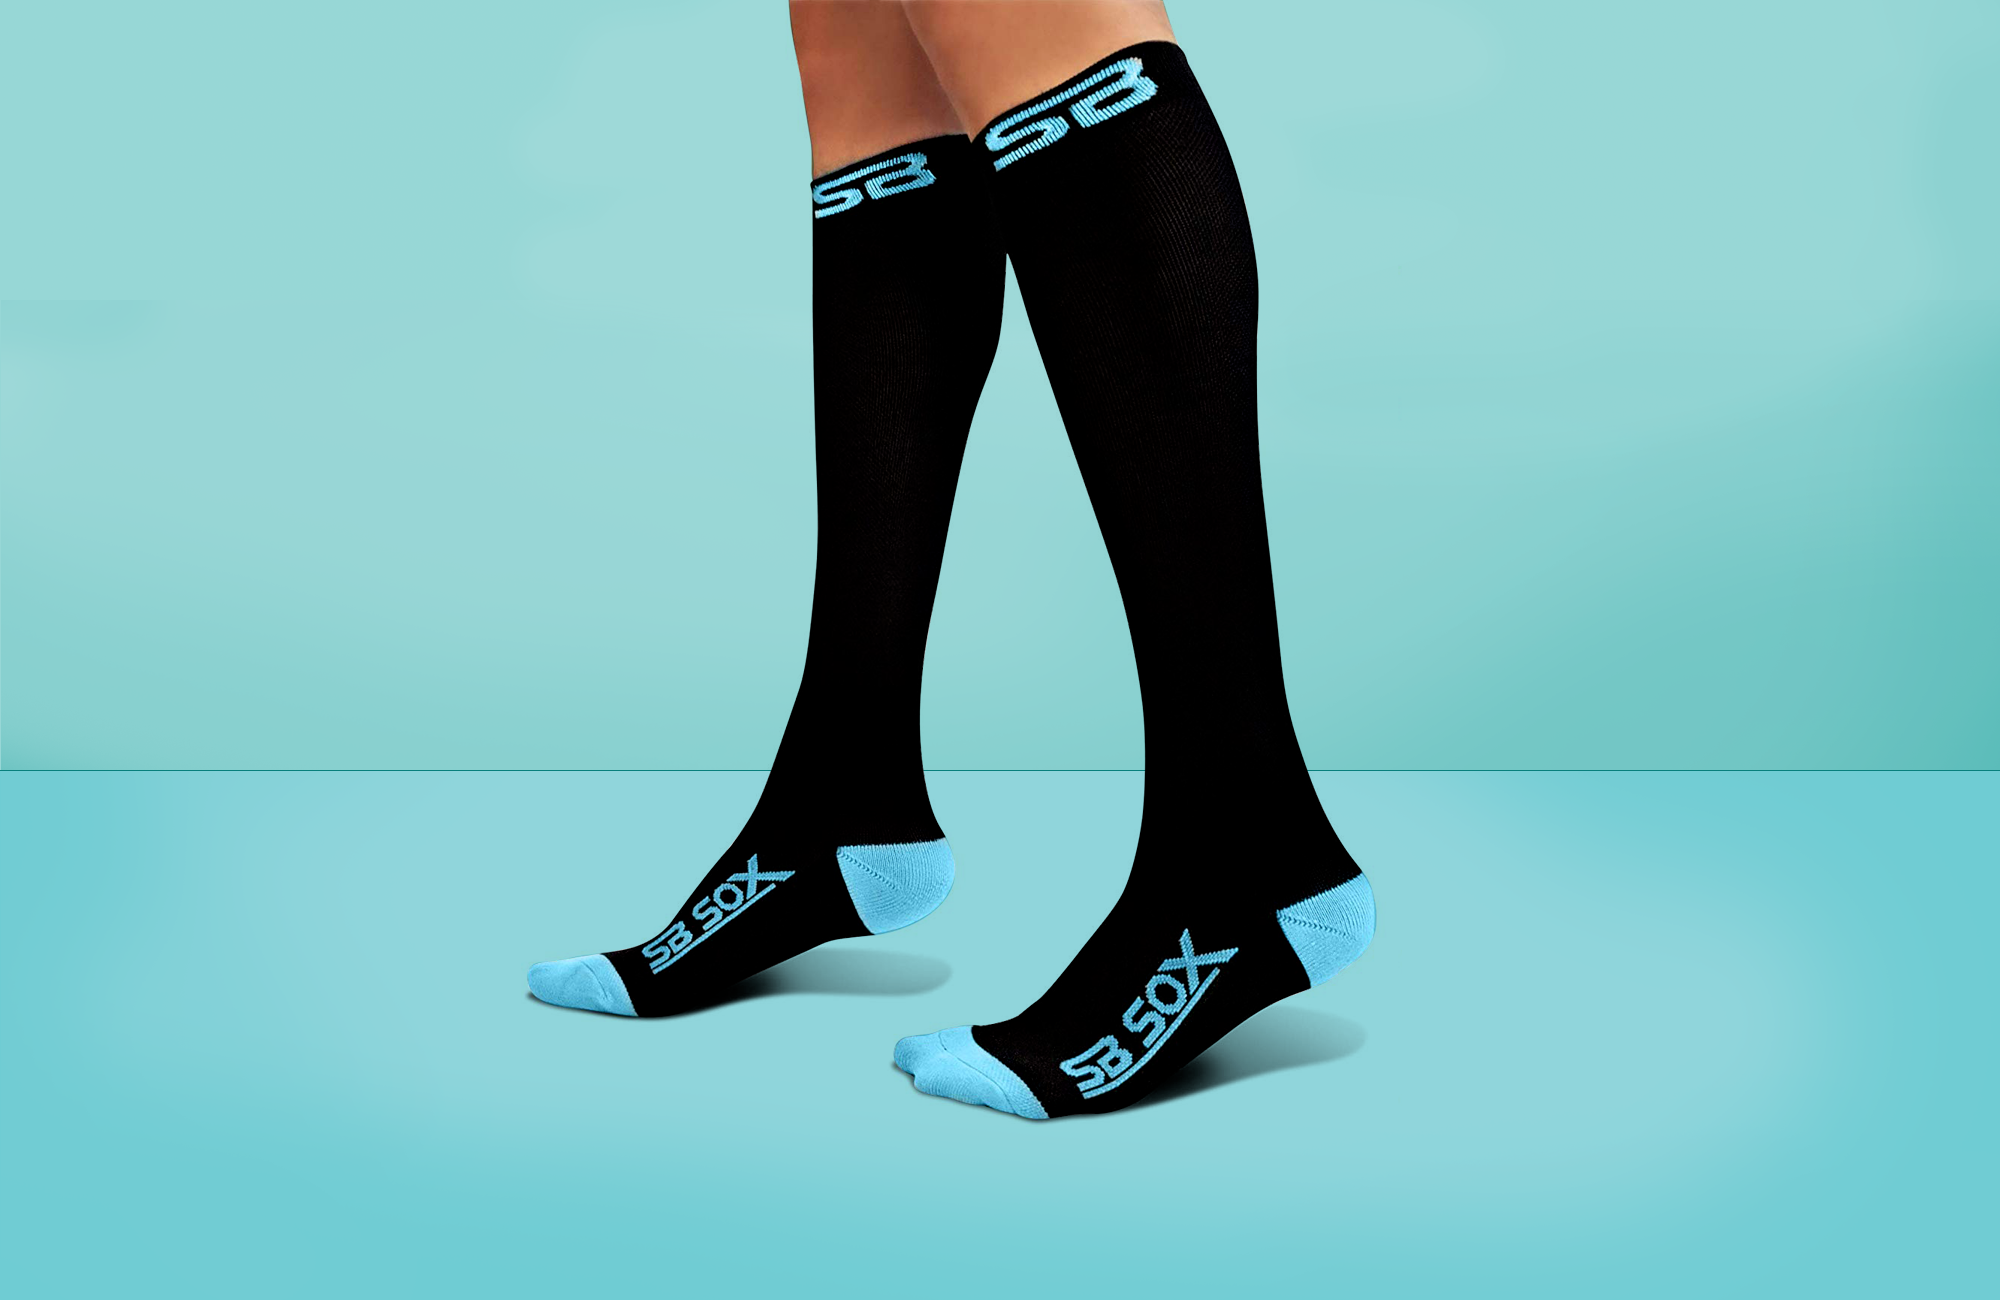 CFR Compression Socks for Men & Women BEST Recovery